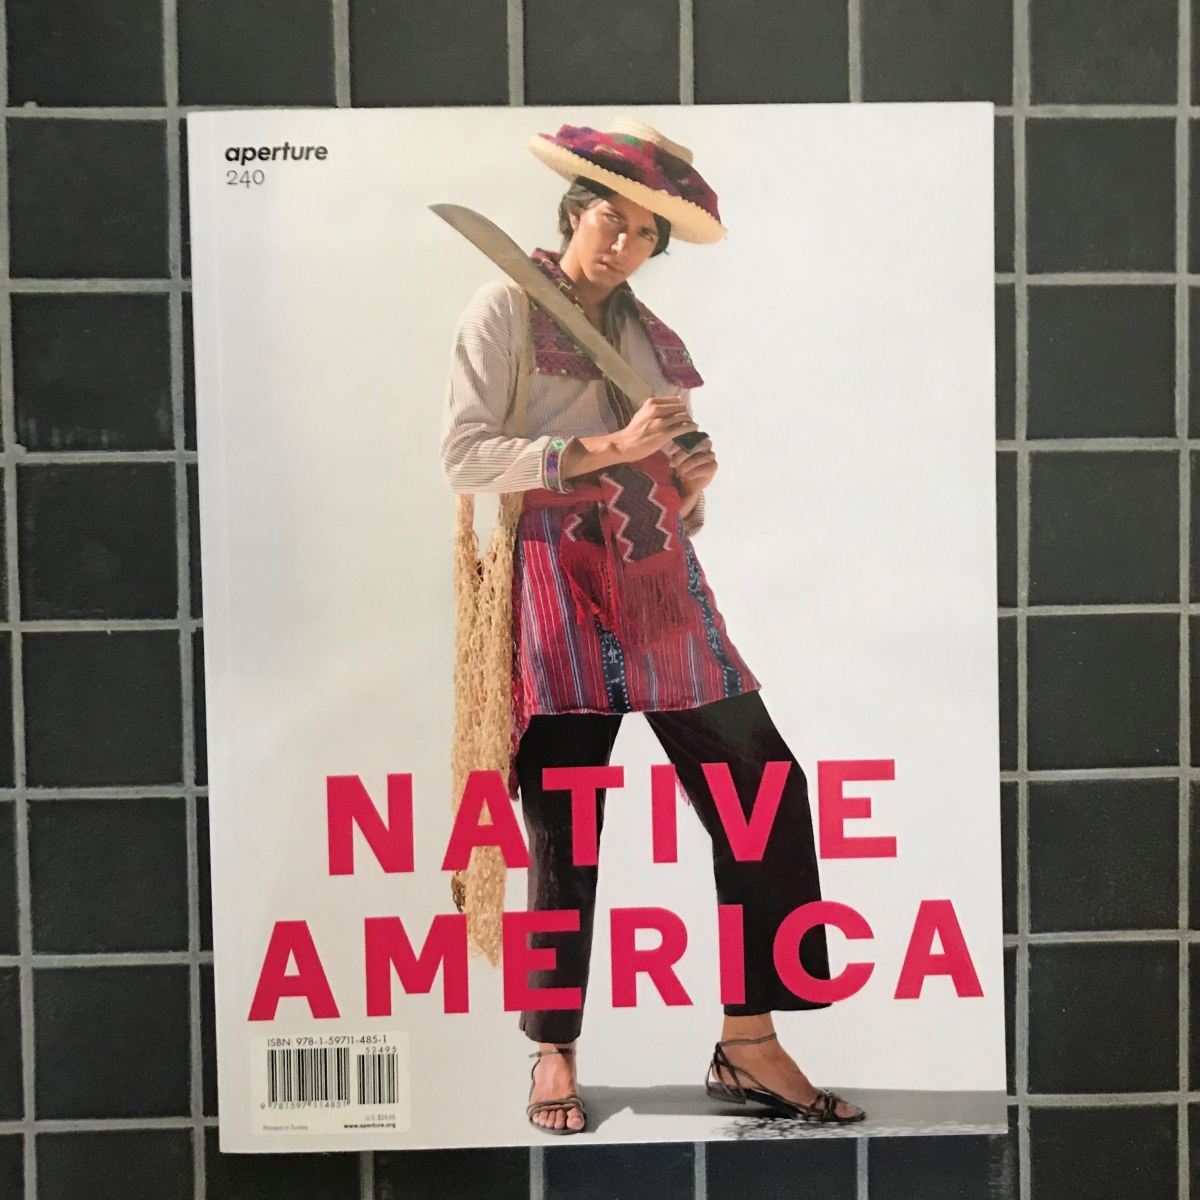 The cover of Aperture magazine issue no. 240 with the title Native America and a photo of a person wearing Indigenous clothing.